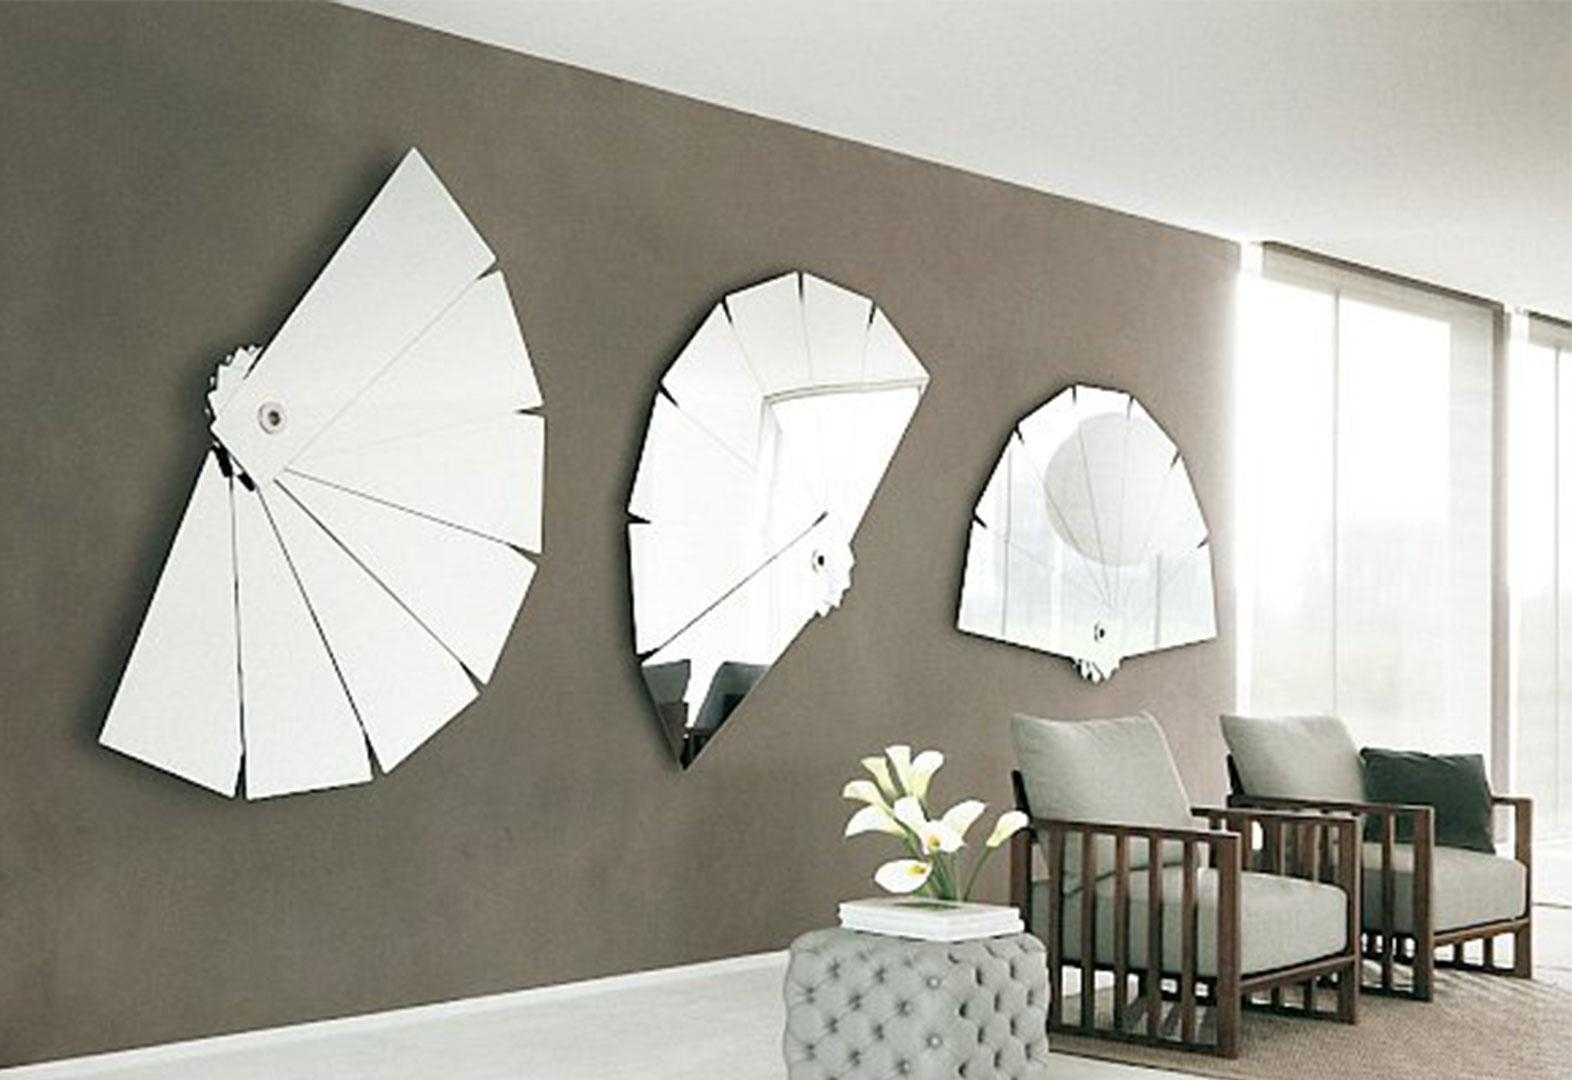 Large Modern Wall Mirrors Best Decorative Wall Mirrors Ideas Regarding Large Contemporary Mirrors (View 12 of 15)